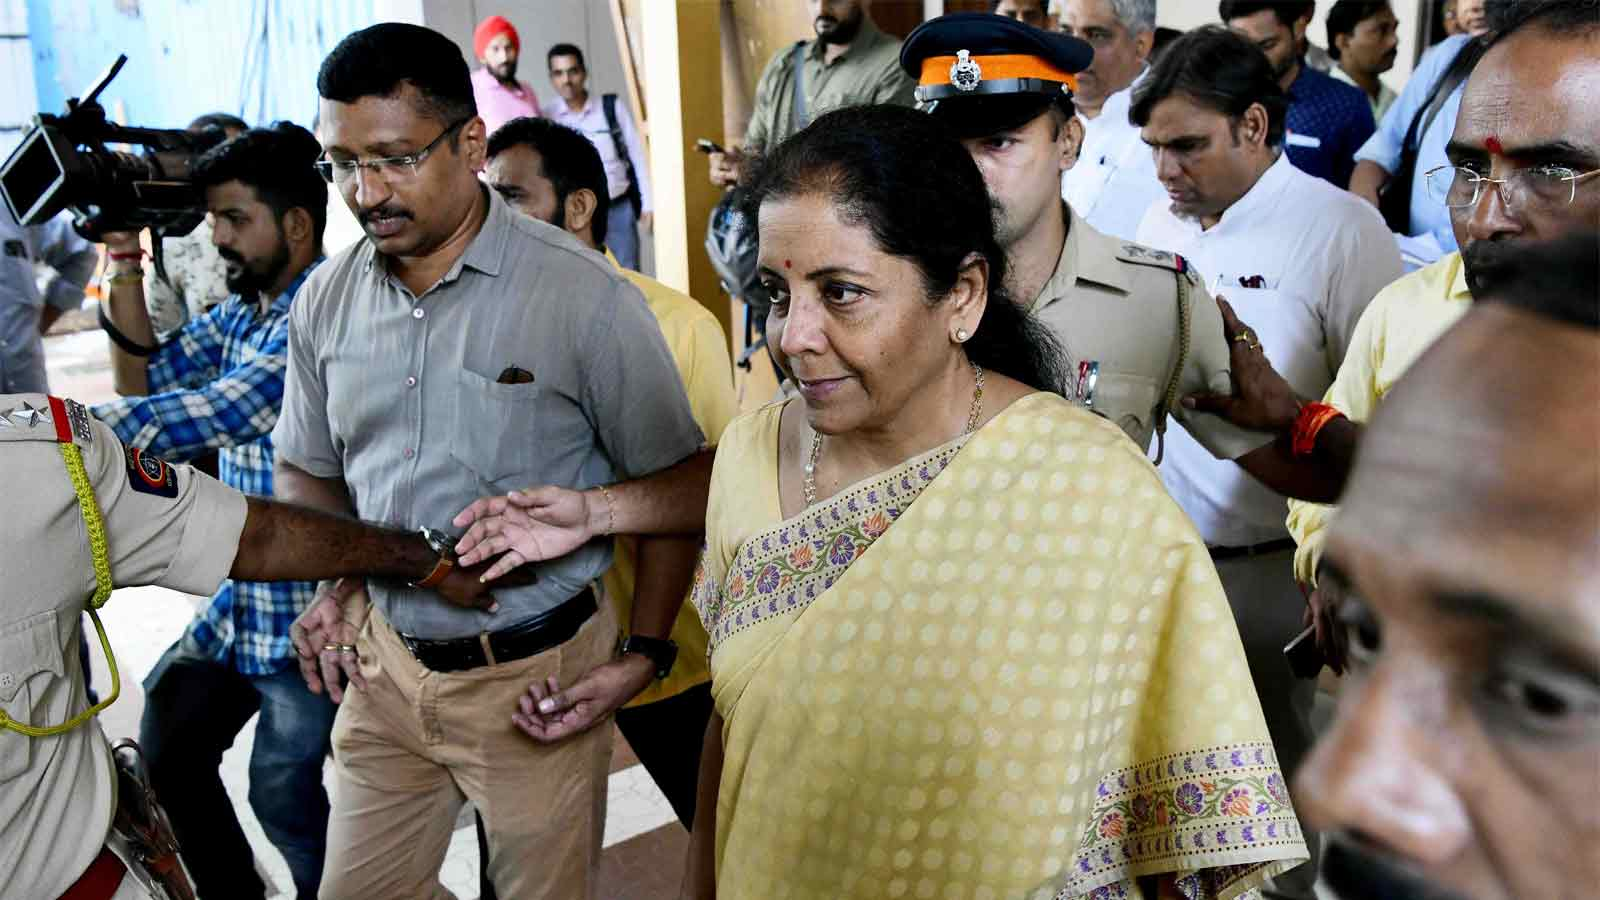 air-india-bharat-petroleum-corporation-to-be-sold-by-march-says-fm-nirmala-sitharaman